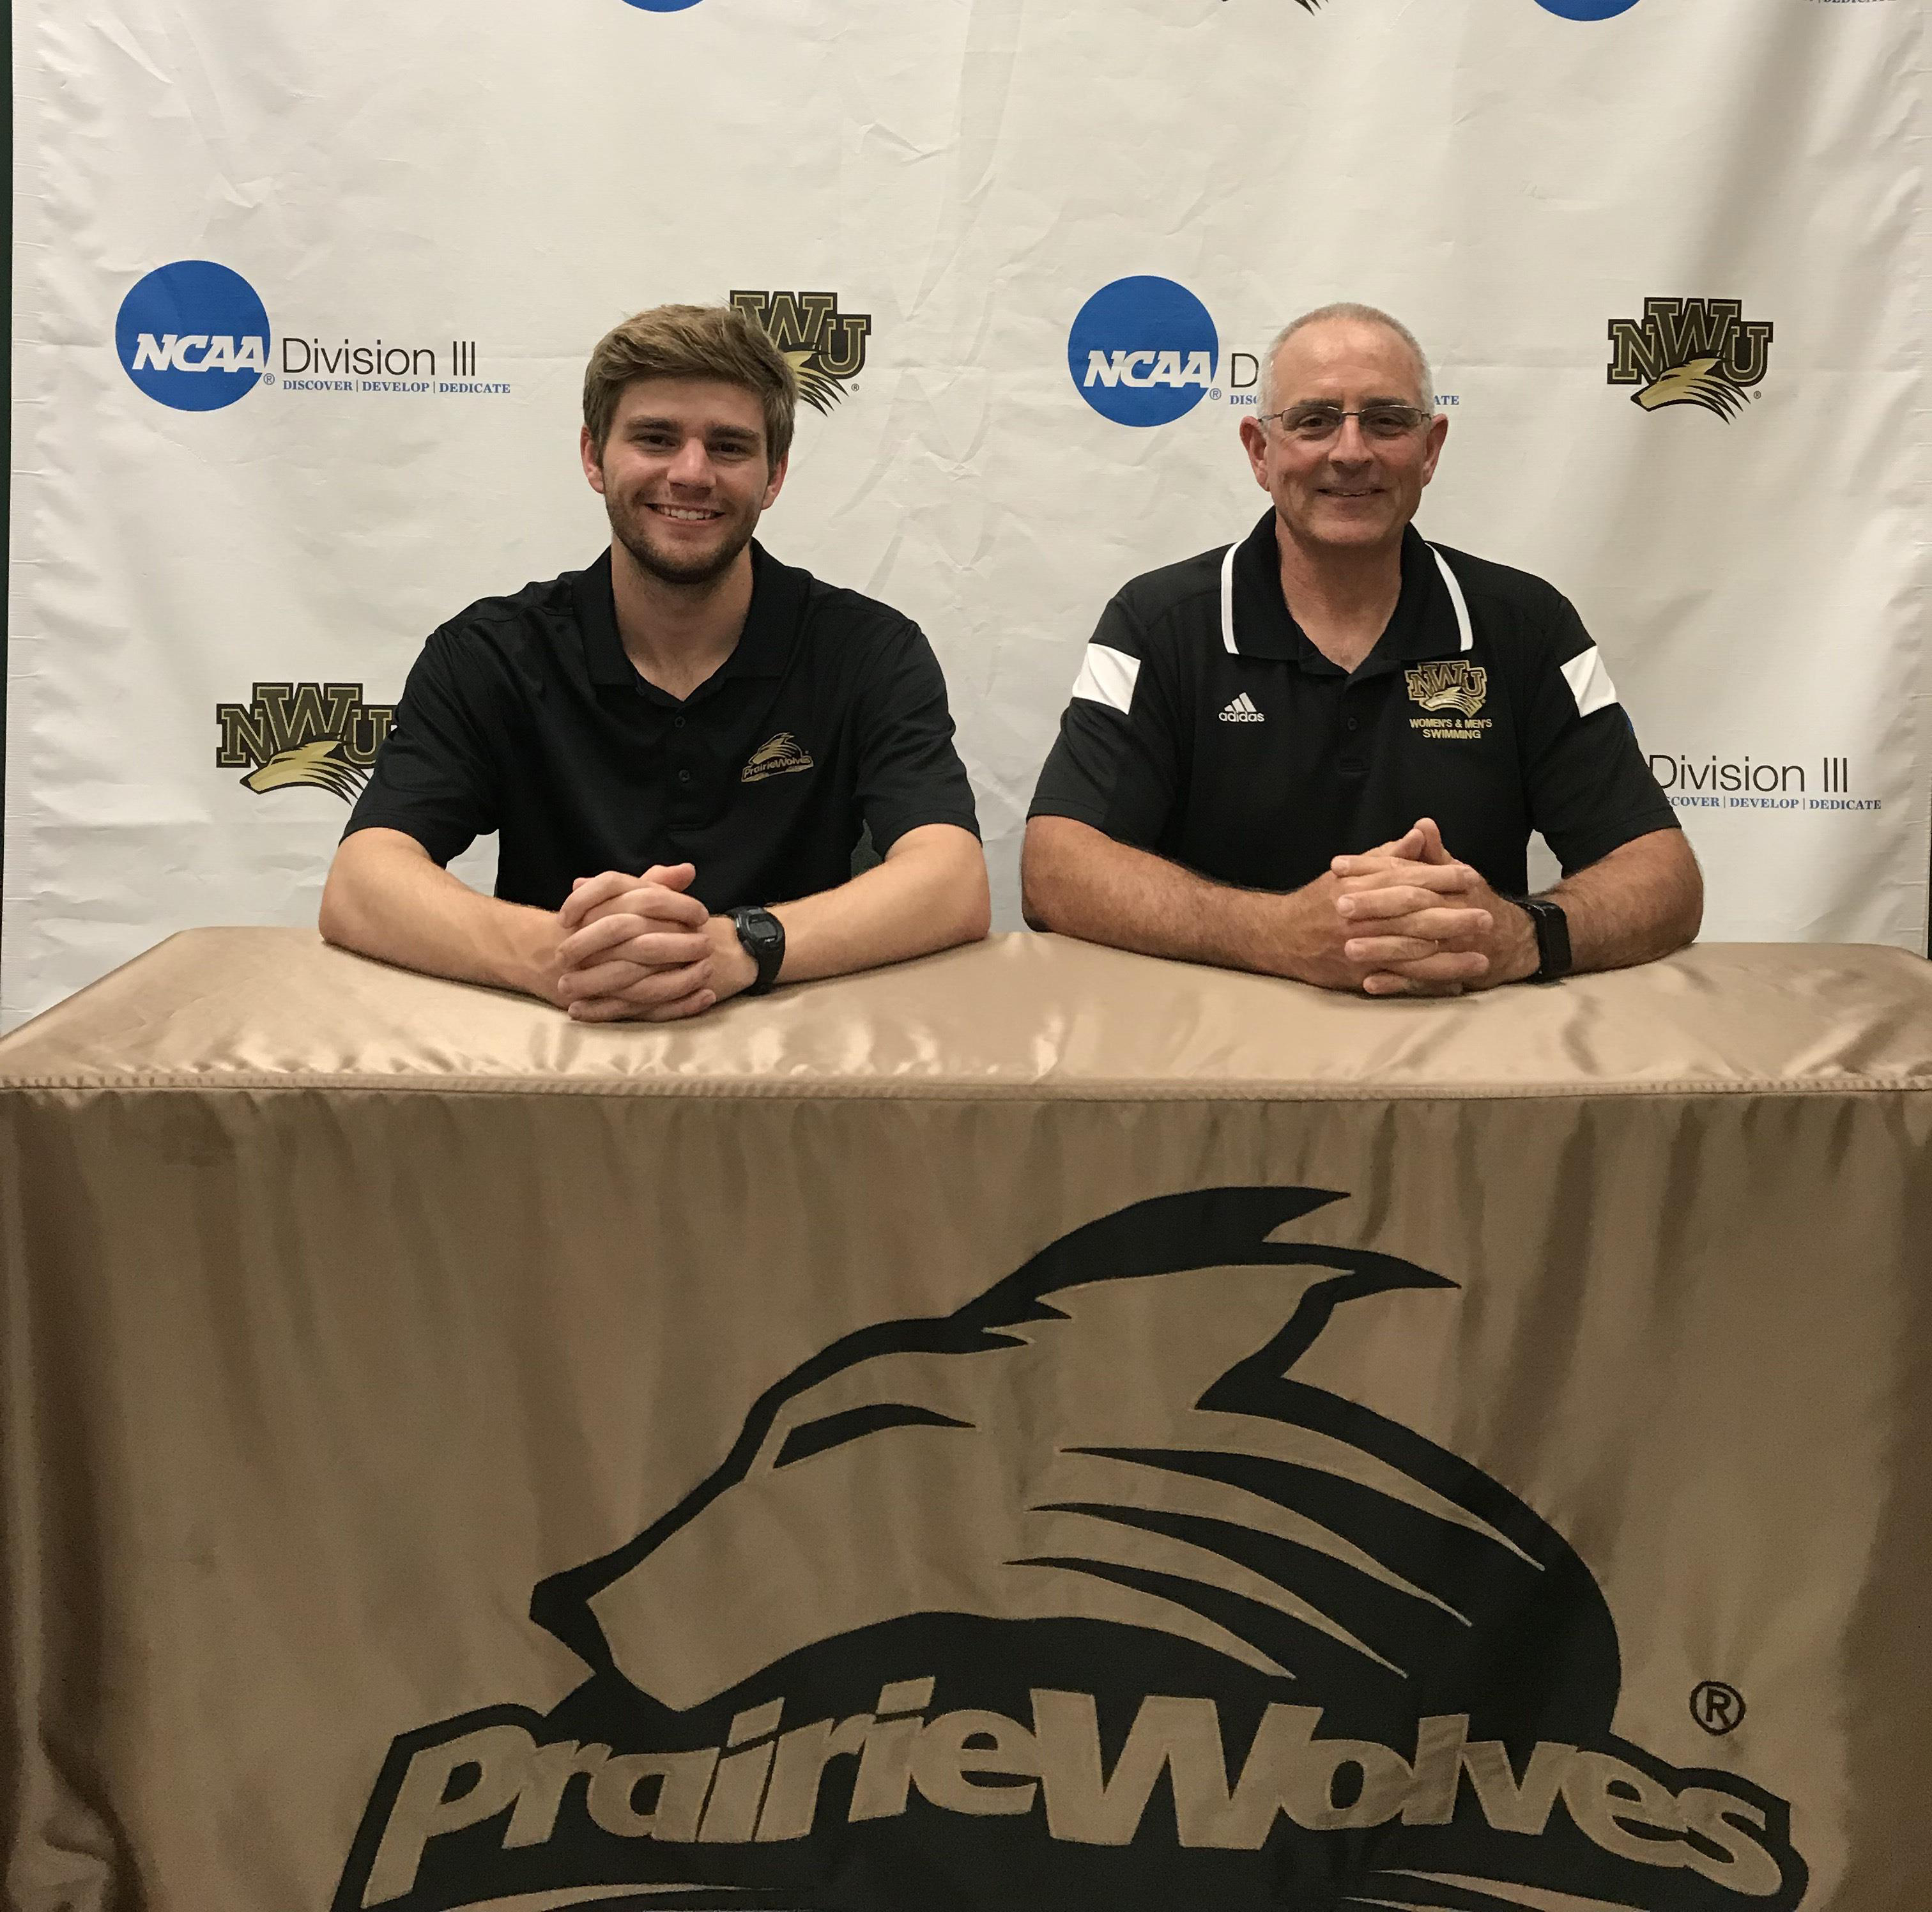 Congrats Marshall – Signing with NWU